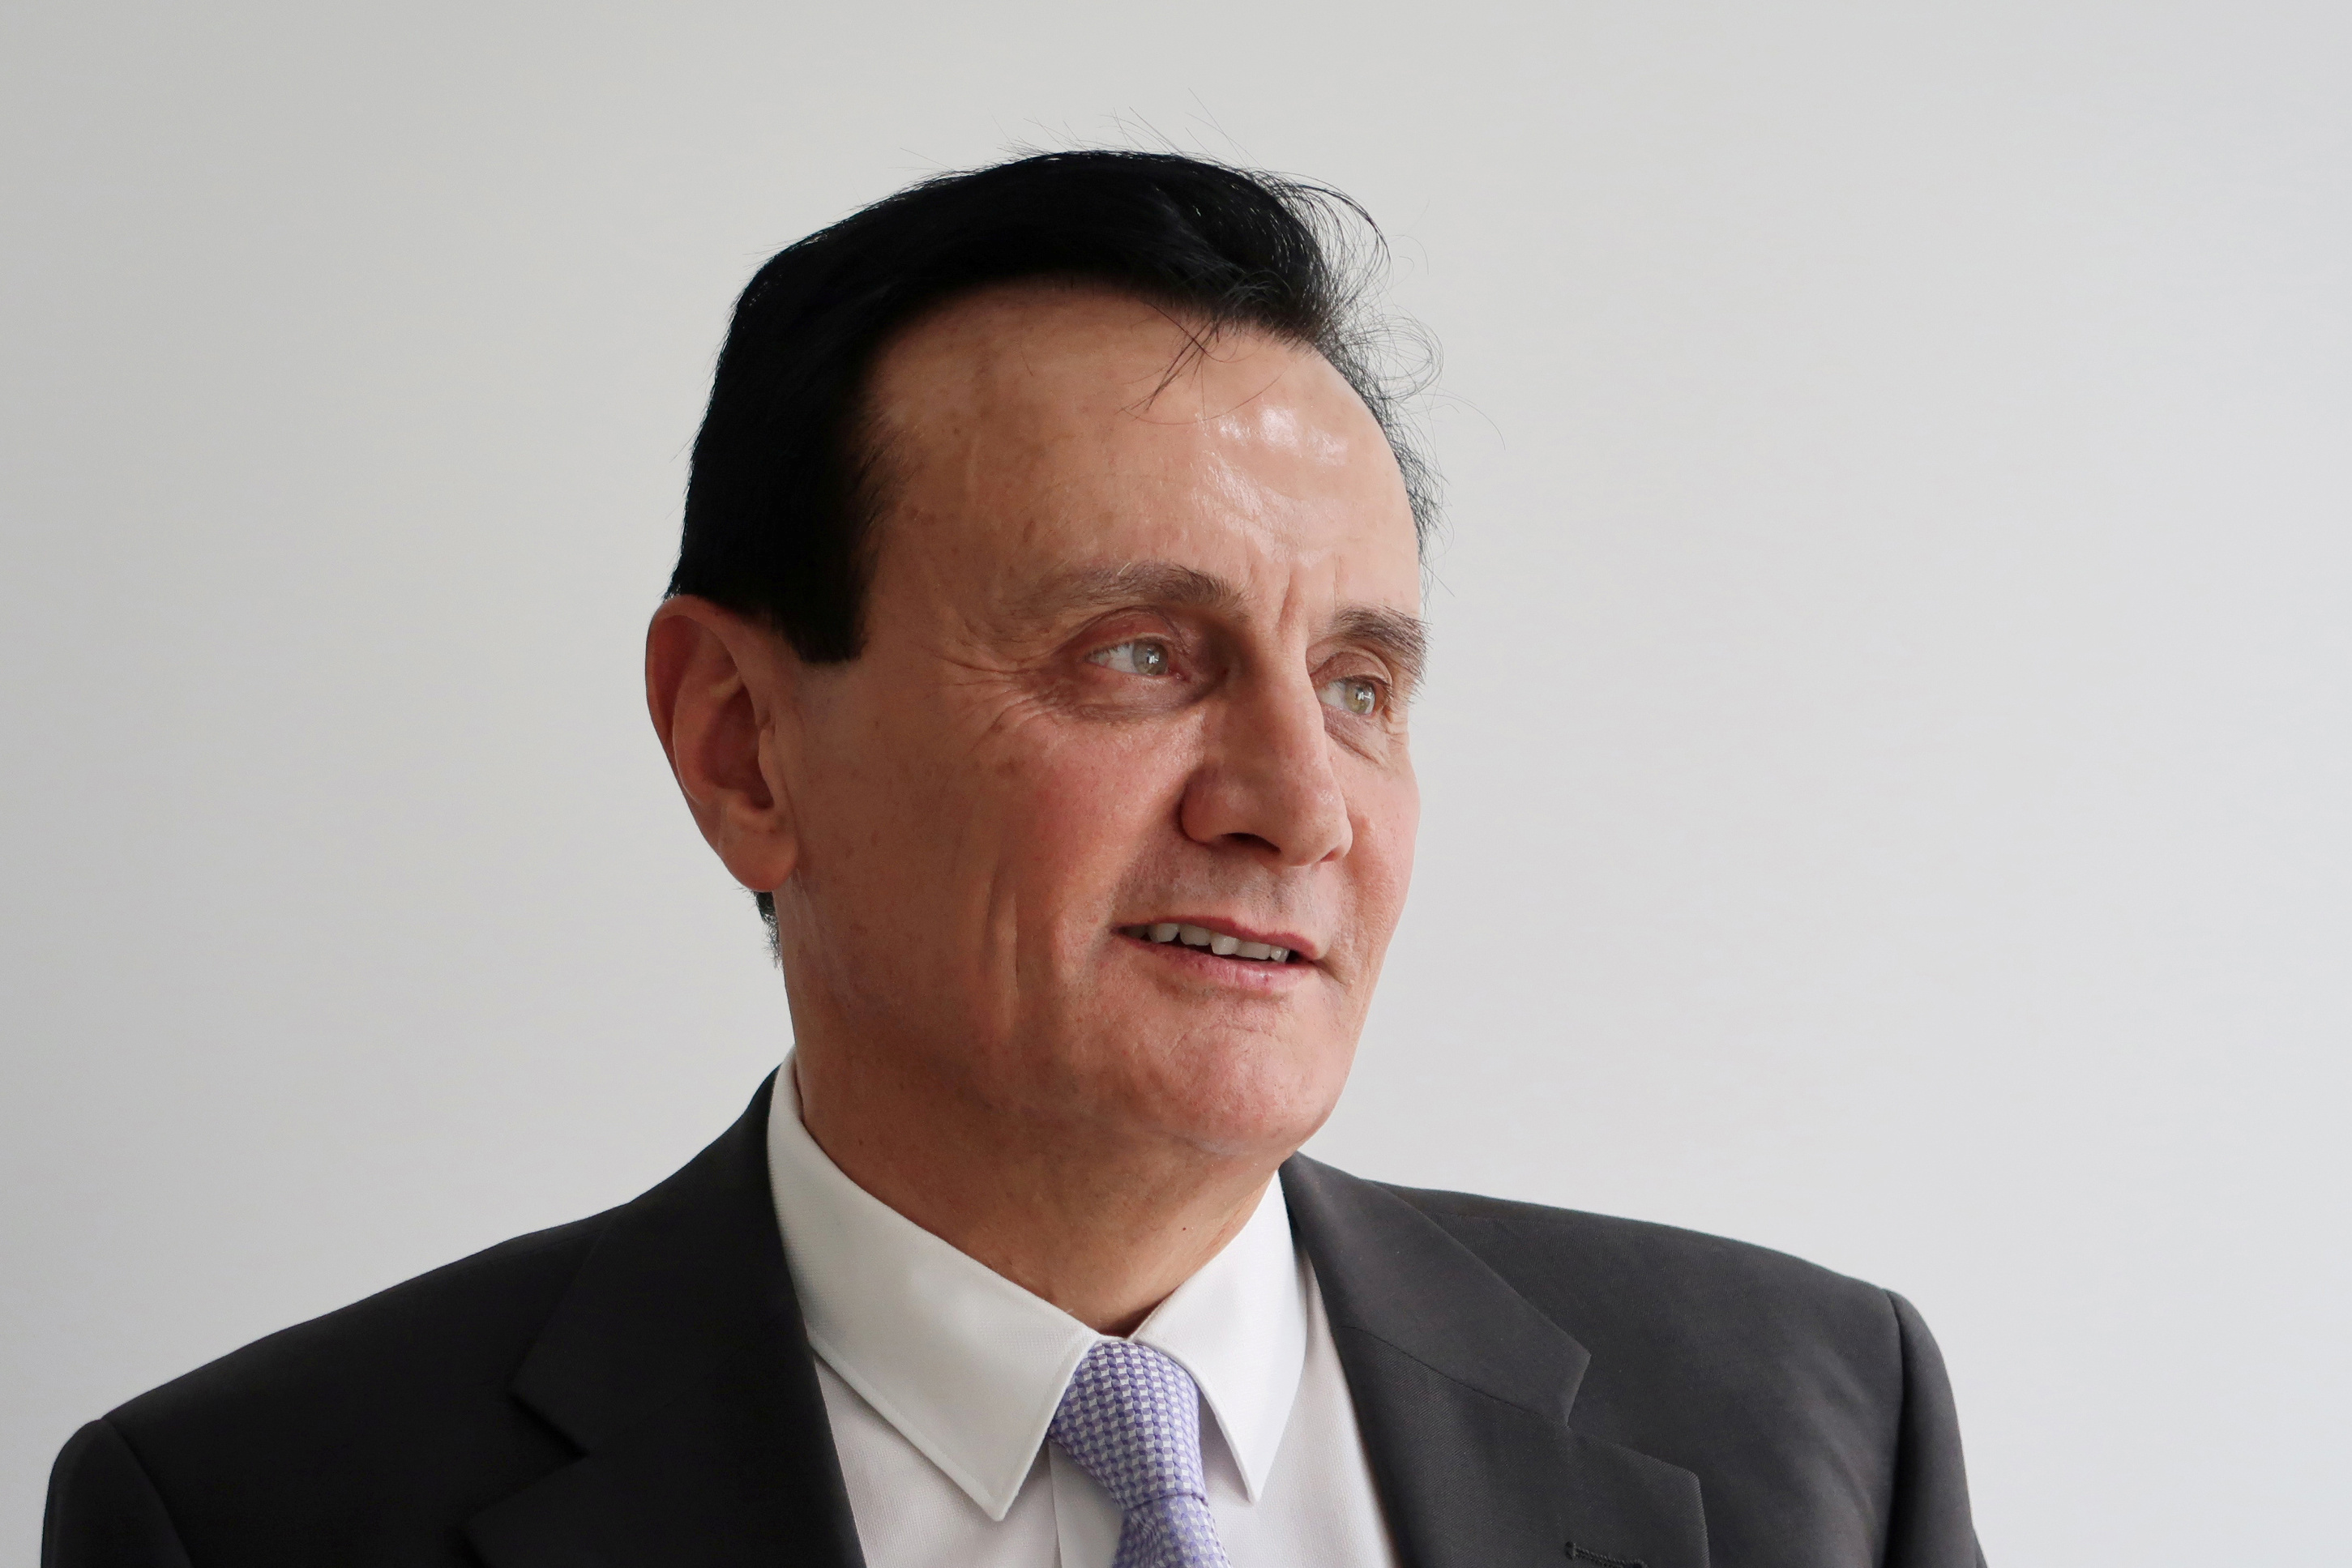 Pascal Soriot, chief executive officer of pharmaceutical company AstraZeneca, attends an interview with Reuters in Shanghai, China November 4, 2019. Picture taken November 4, 2019.  REUTERS/Brenda Goh/File Photo